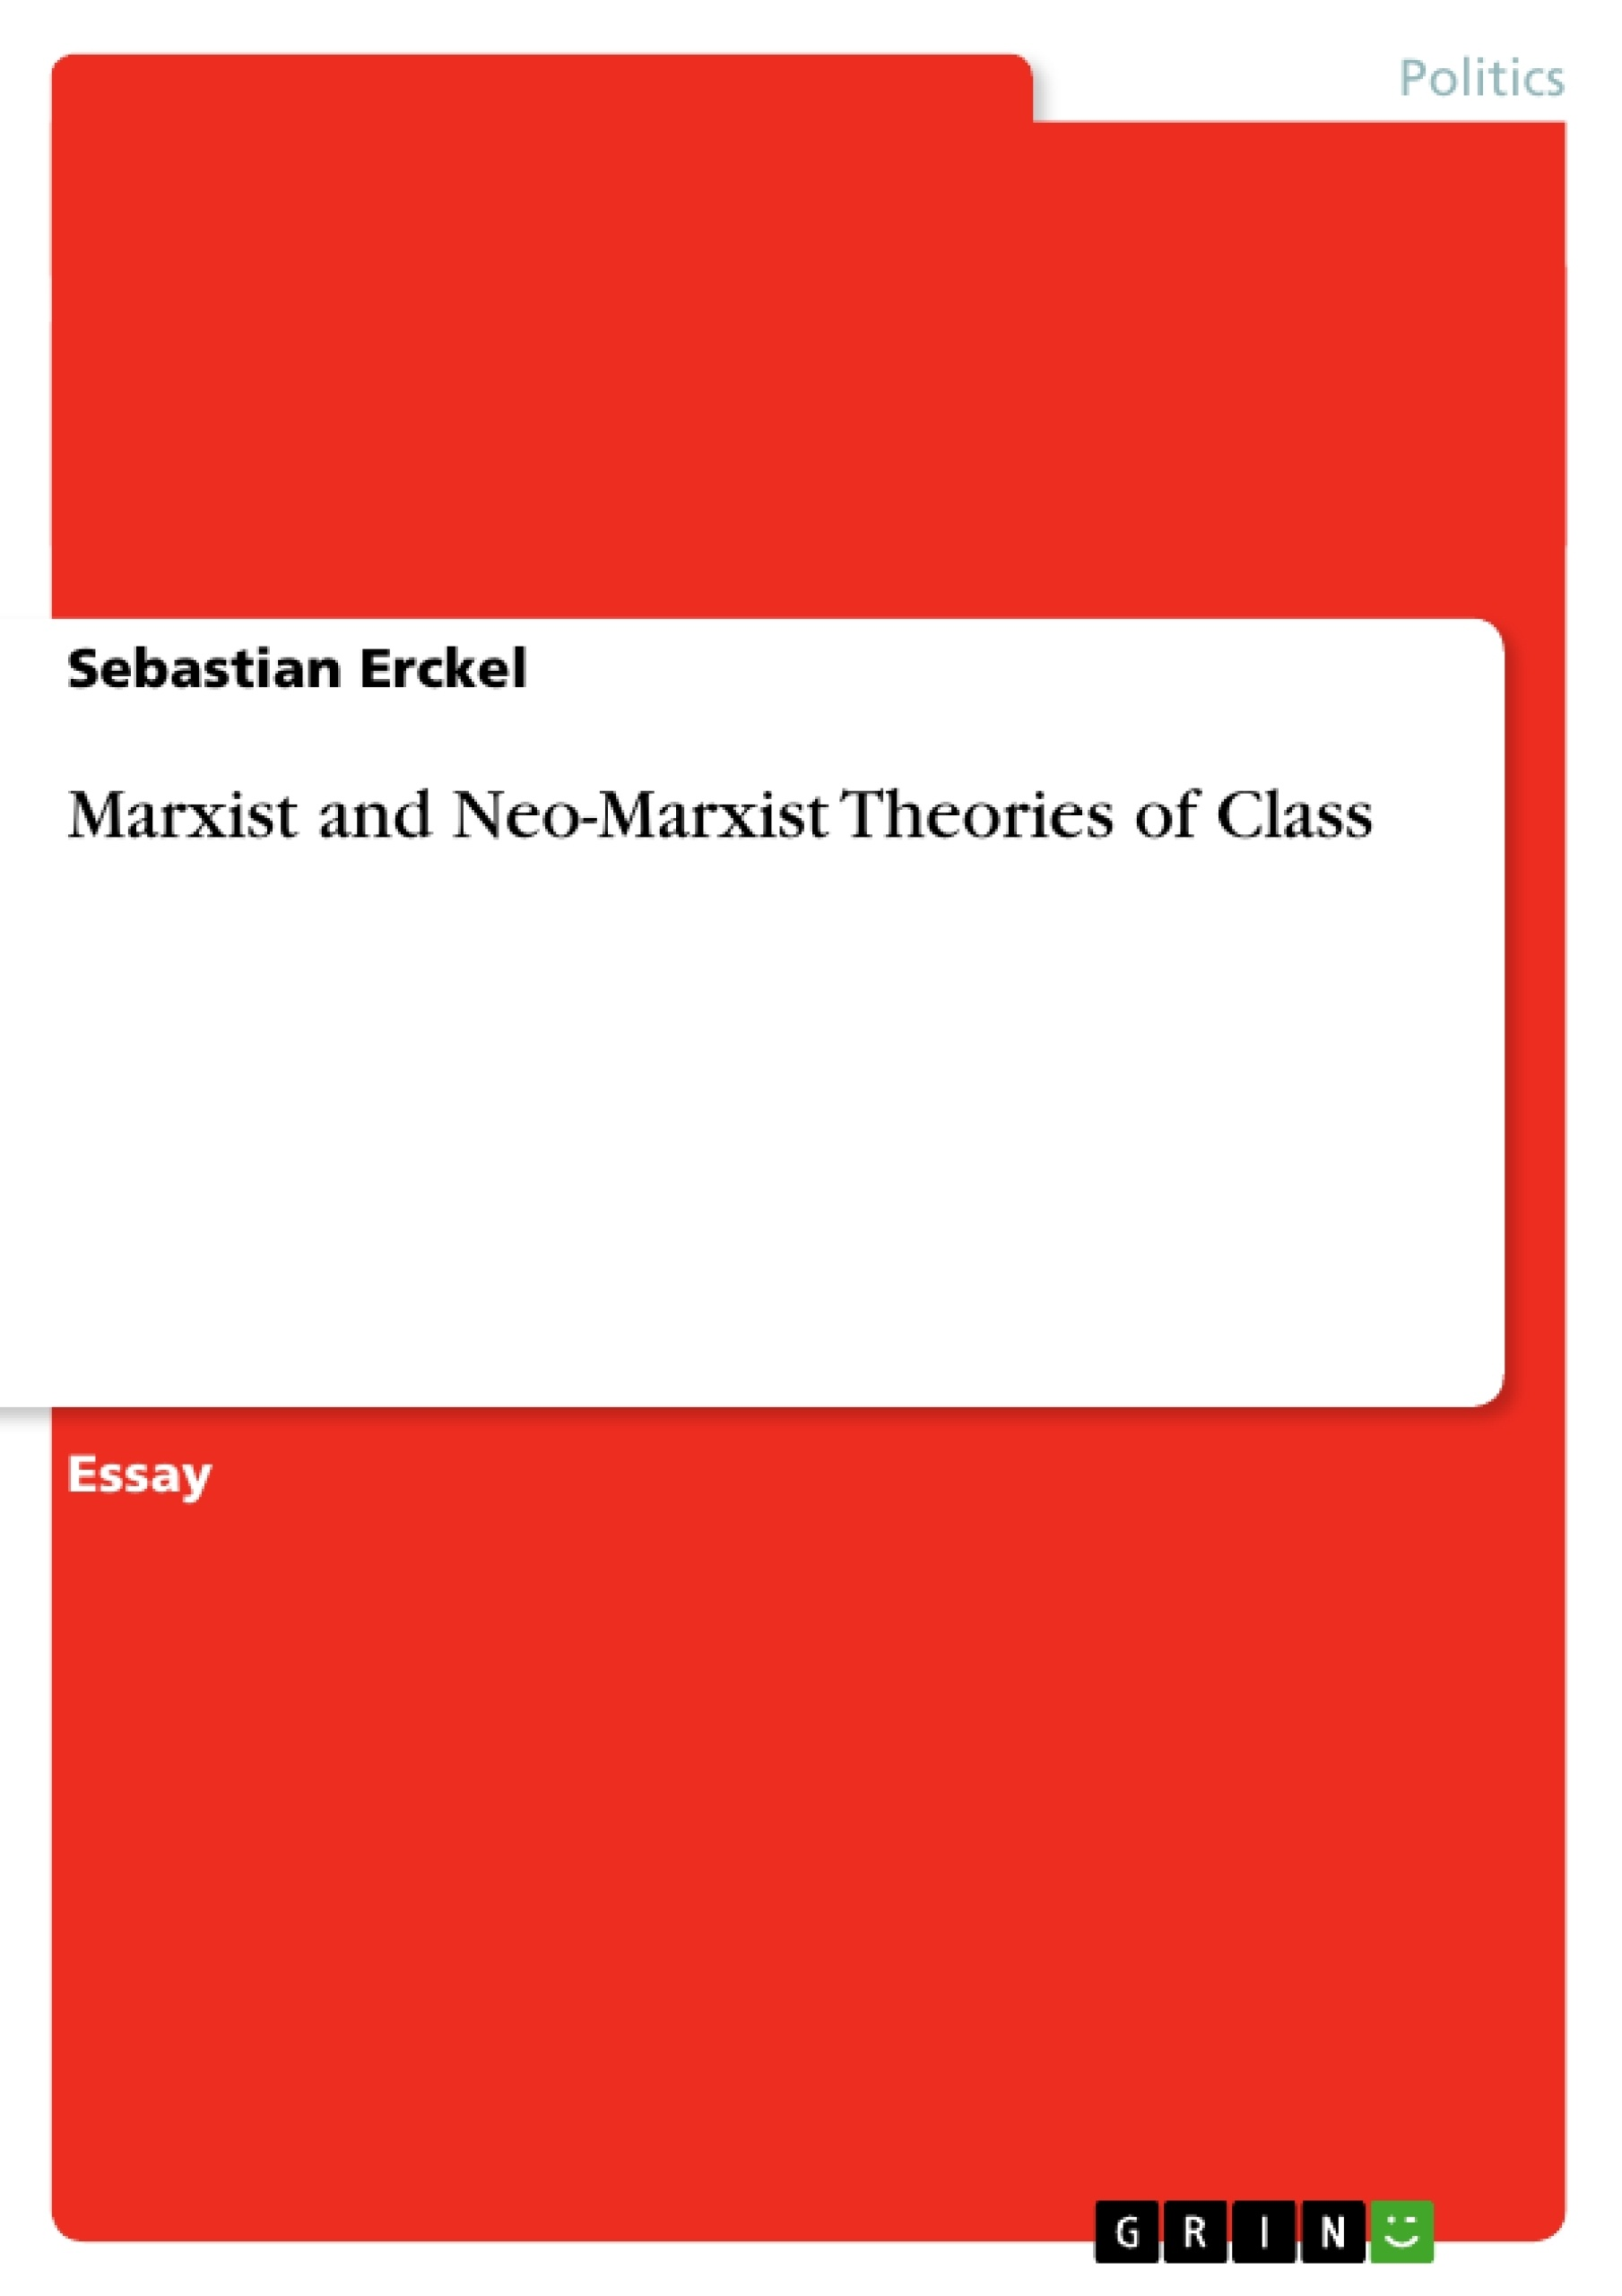 marxist and neo marxist theories of class publish your master s upload your own papers earn money and win an iphone 7